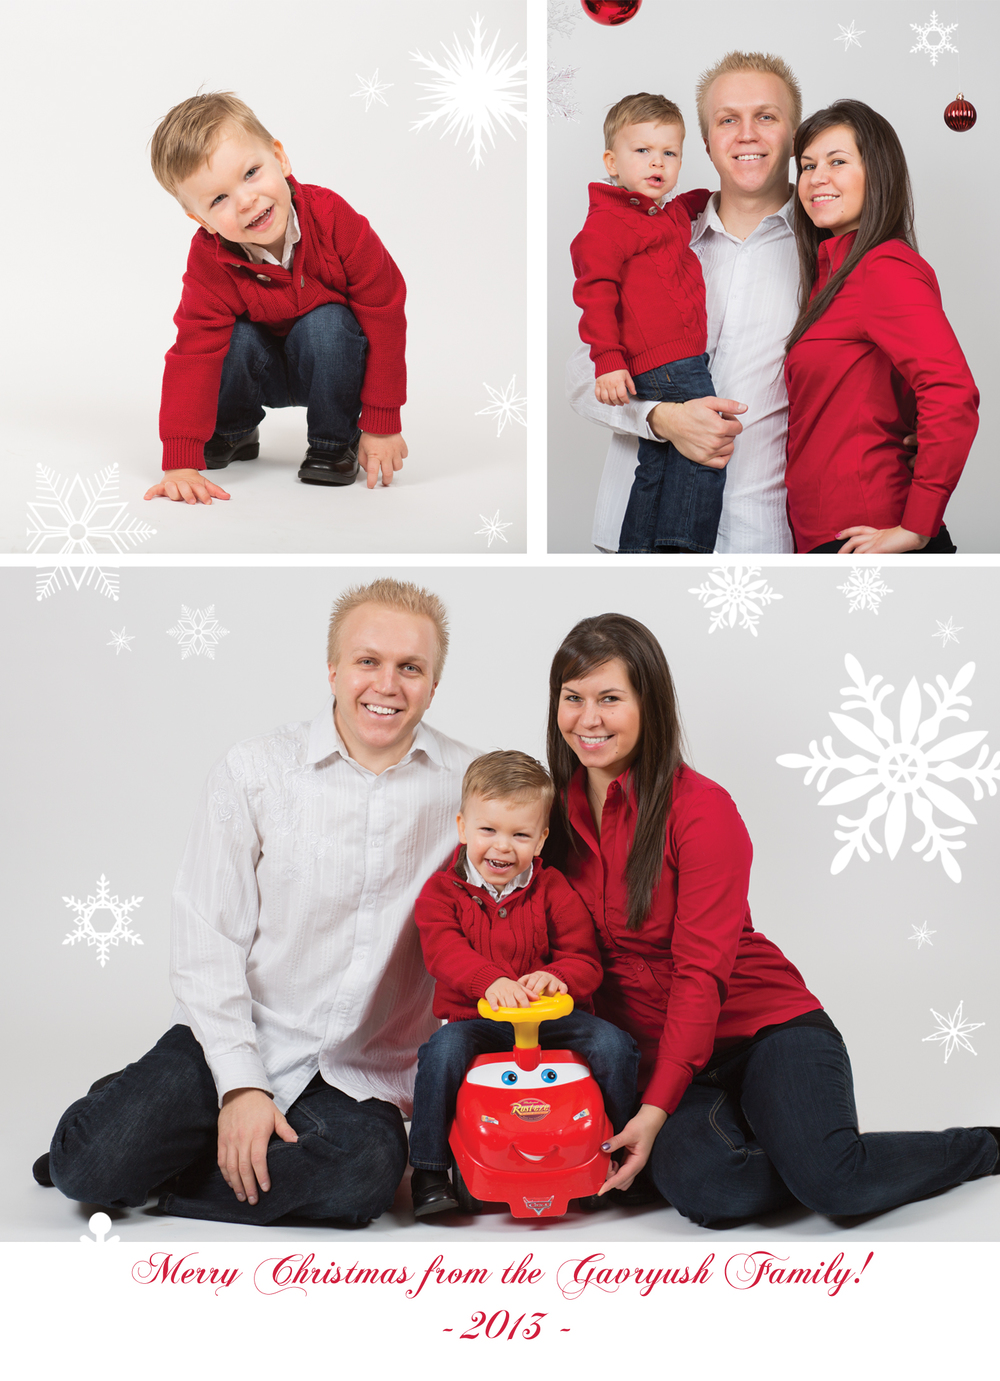 ChristmasCard2014.jpg